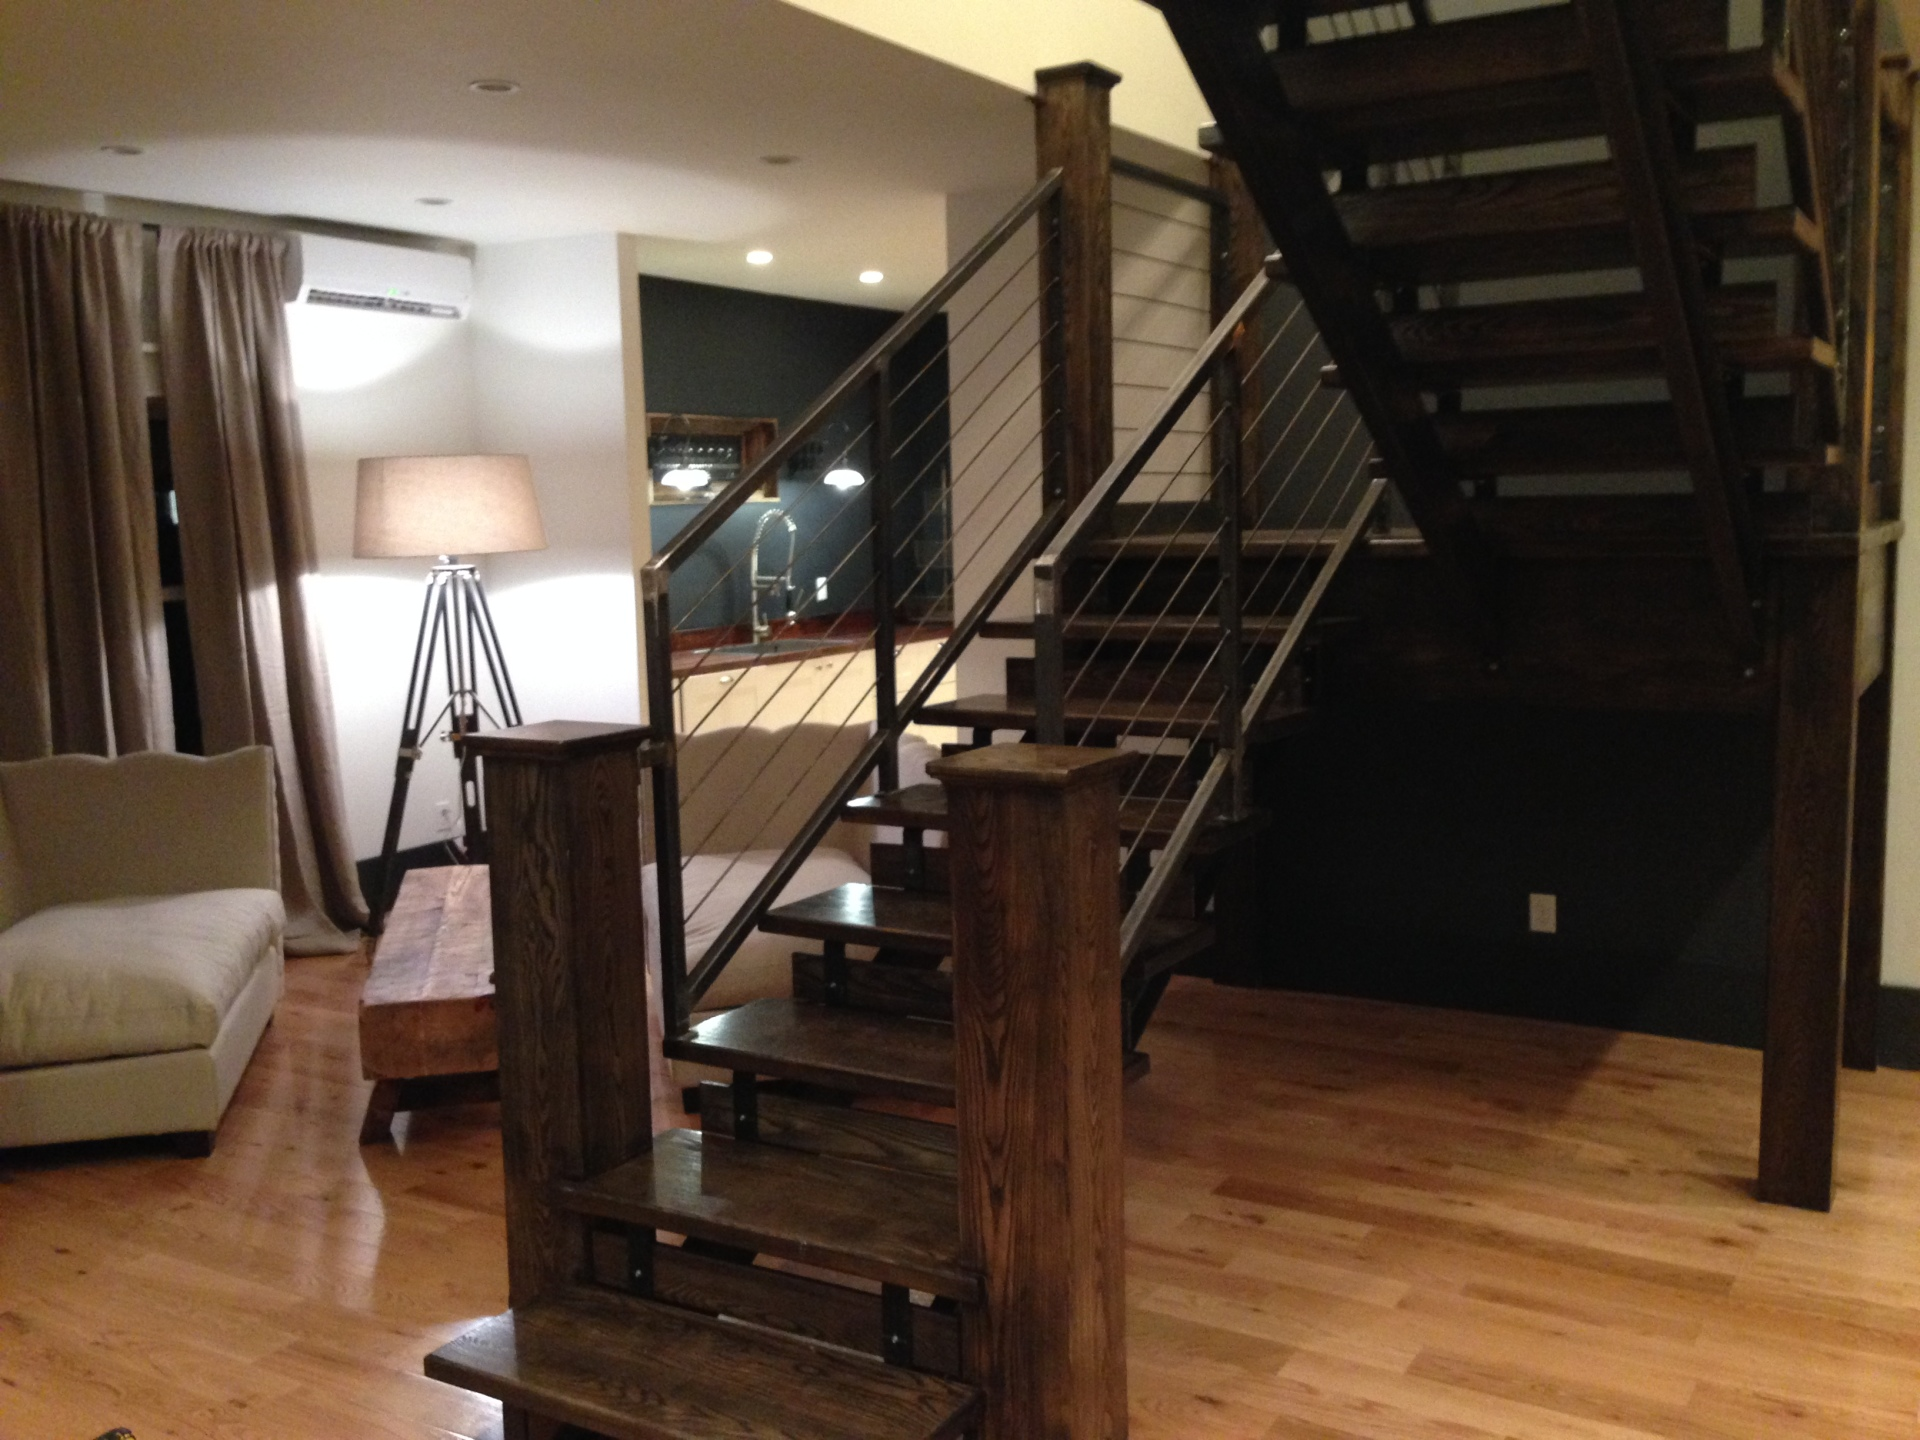 The Montauk ~ Three story stairwell dividing two comfortable living areas